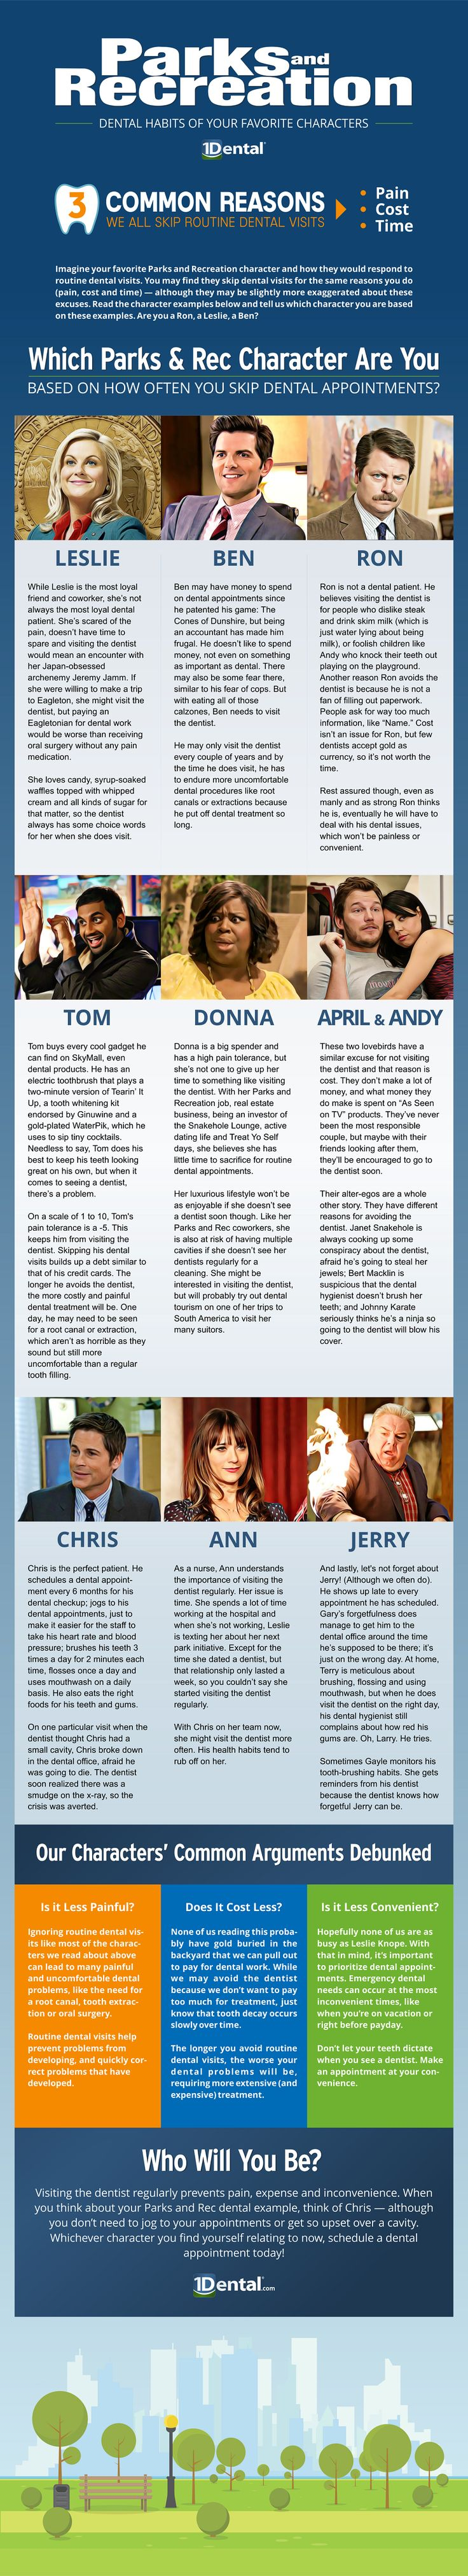 Which Parks and Rec Character Are You Based on How Often You Skip Dental Visits? #parksandrec #parksandrecreation #dentalinfographics #dentalvisits